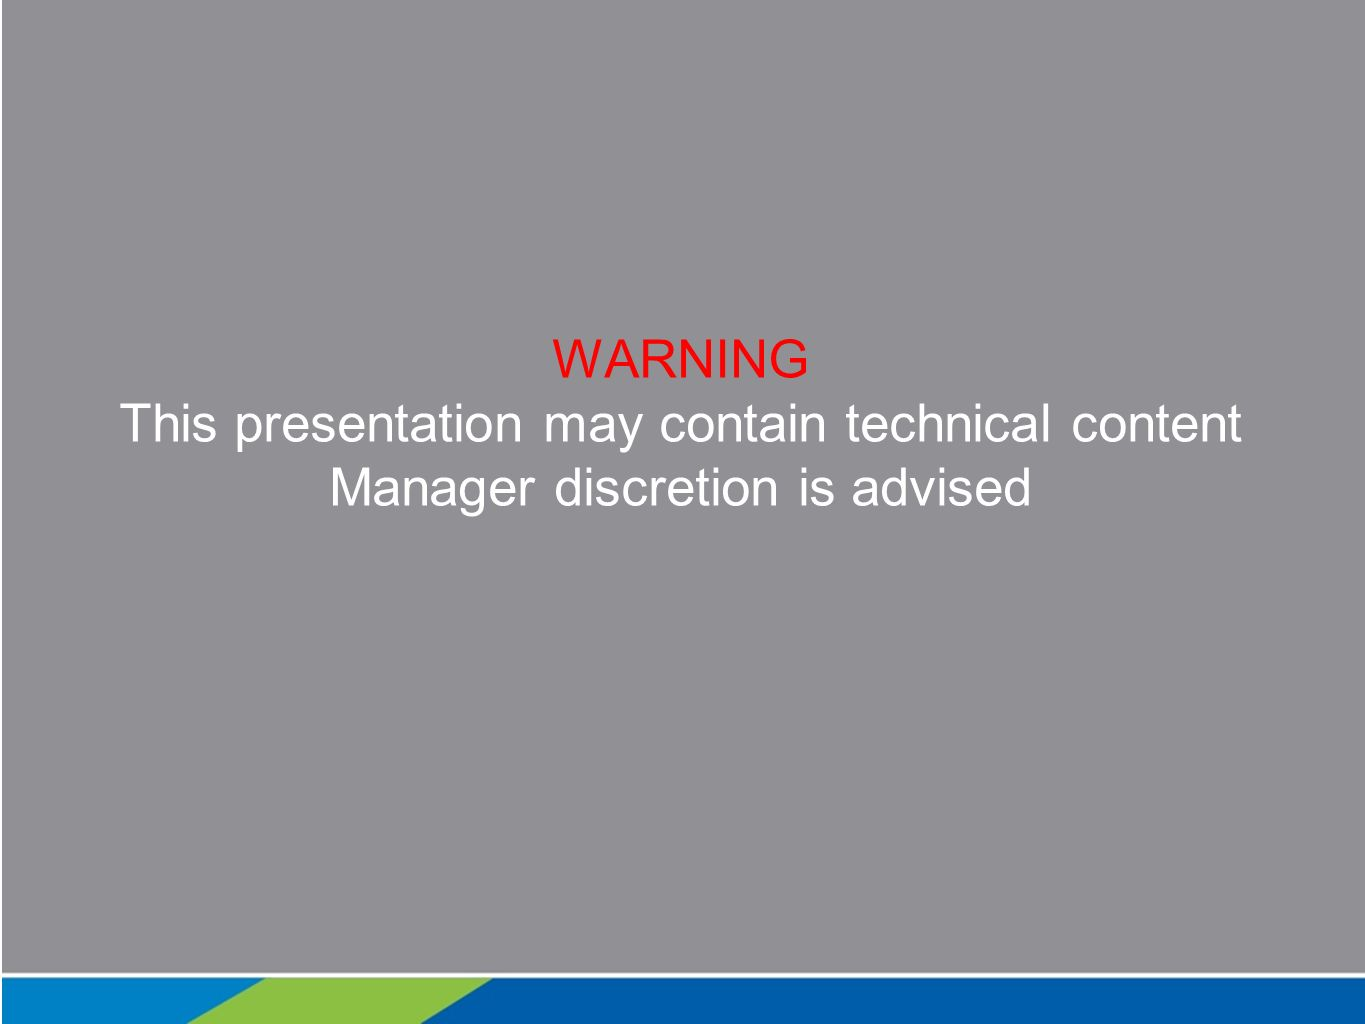 WARNING This presentation may contain technical content Manager discretion is advised